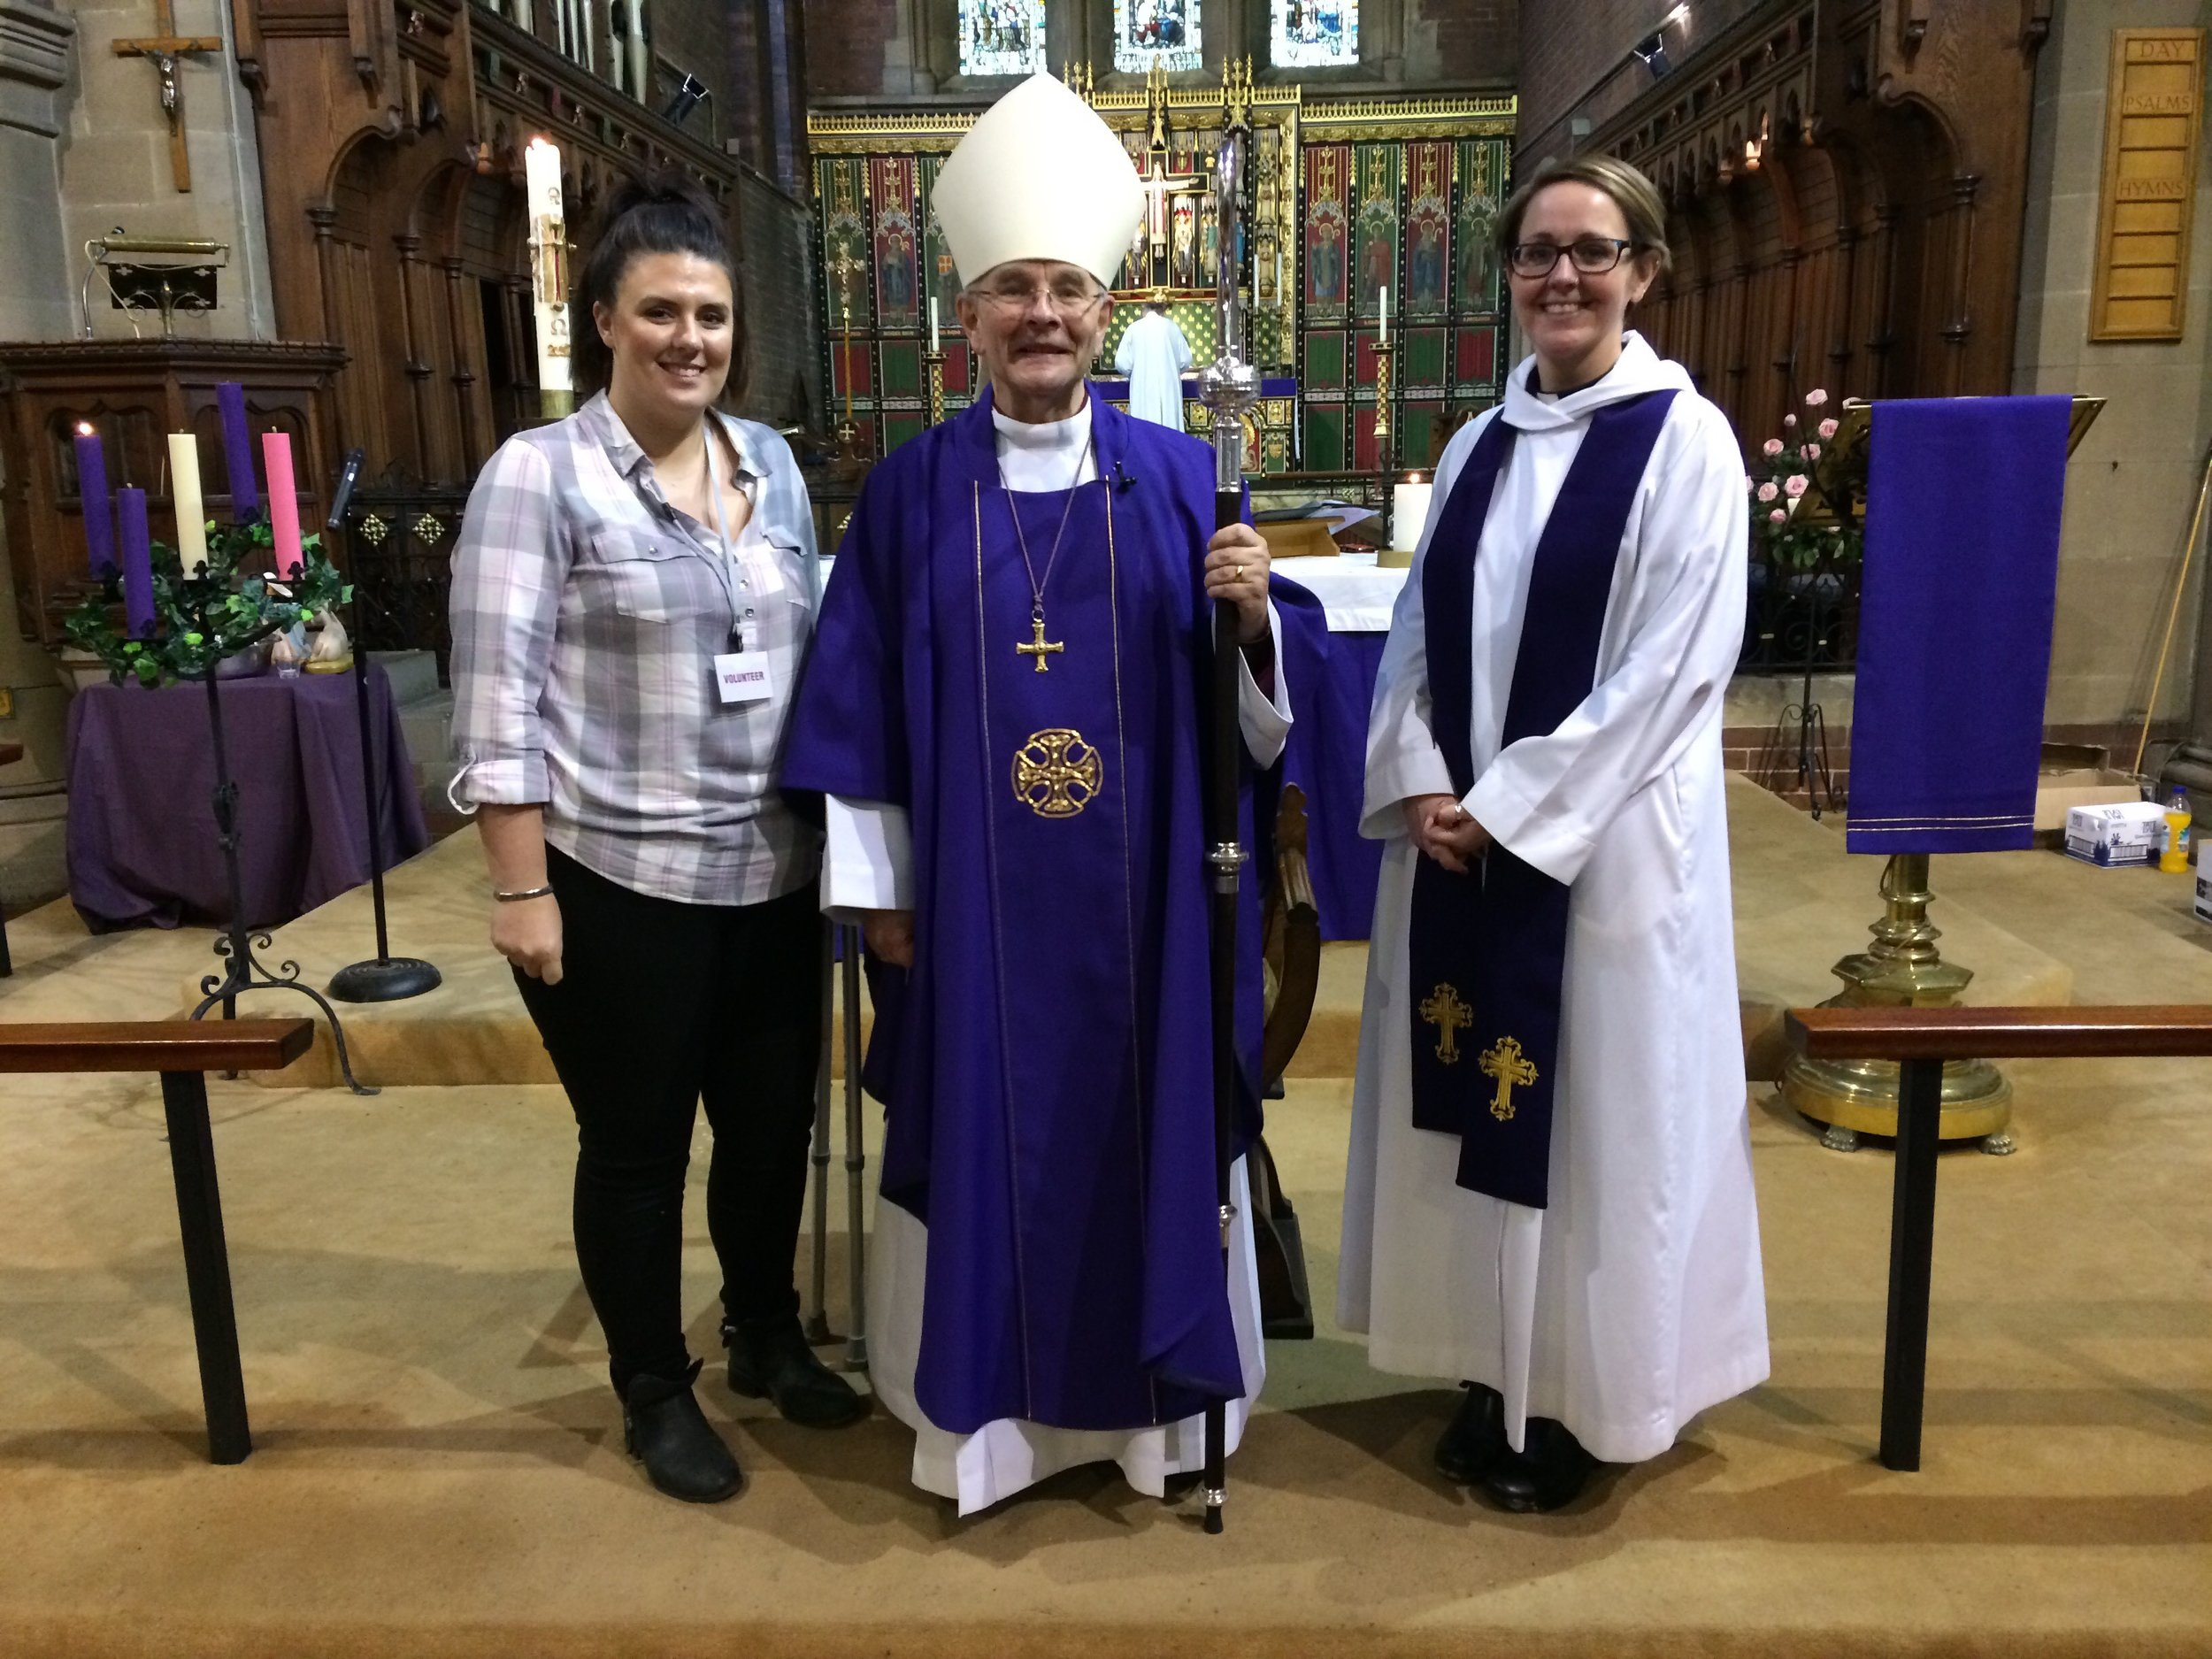 Revd Gemma with the Bishop